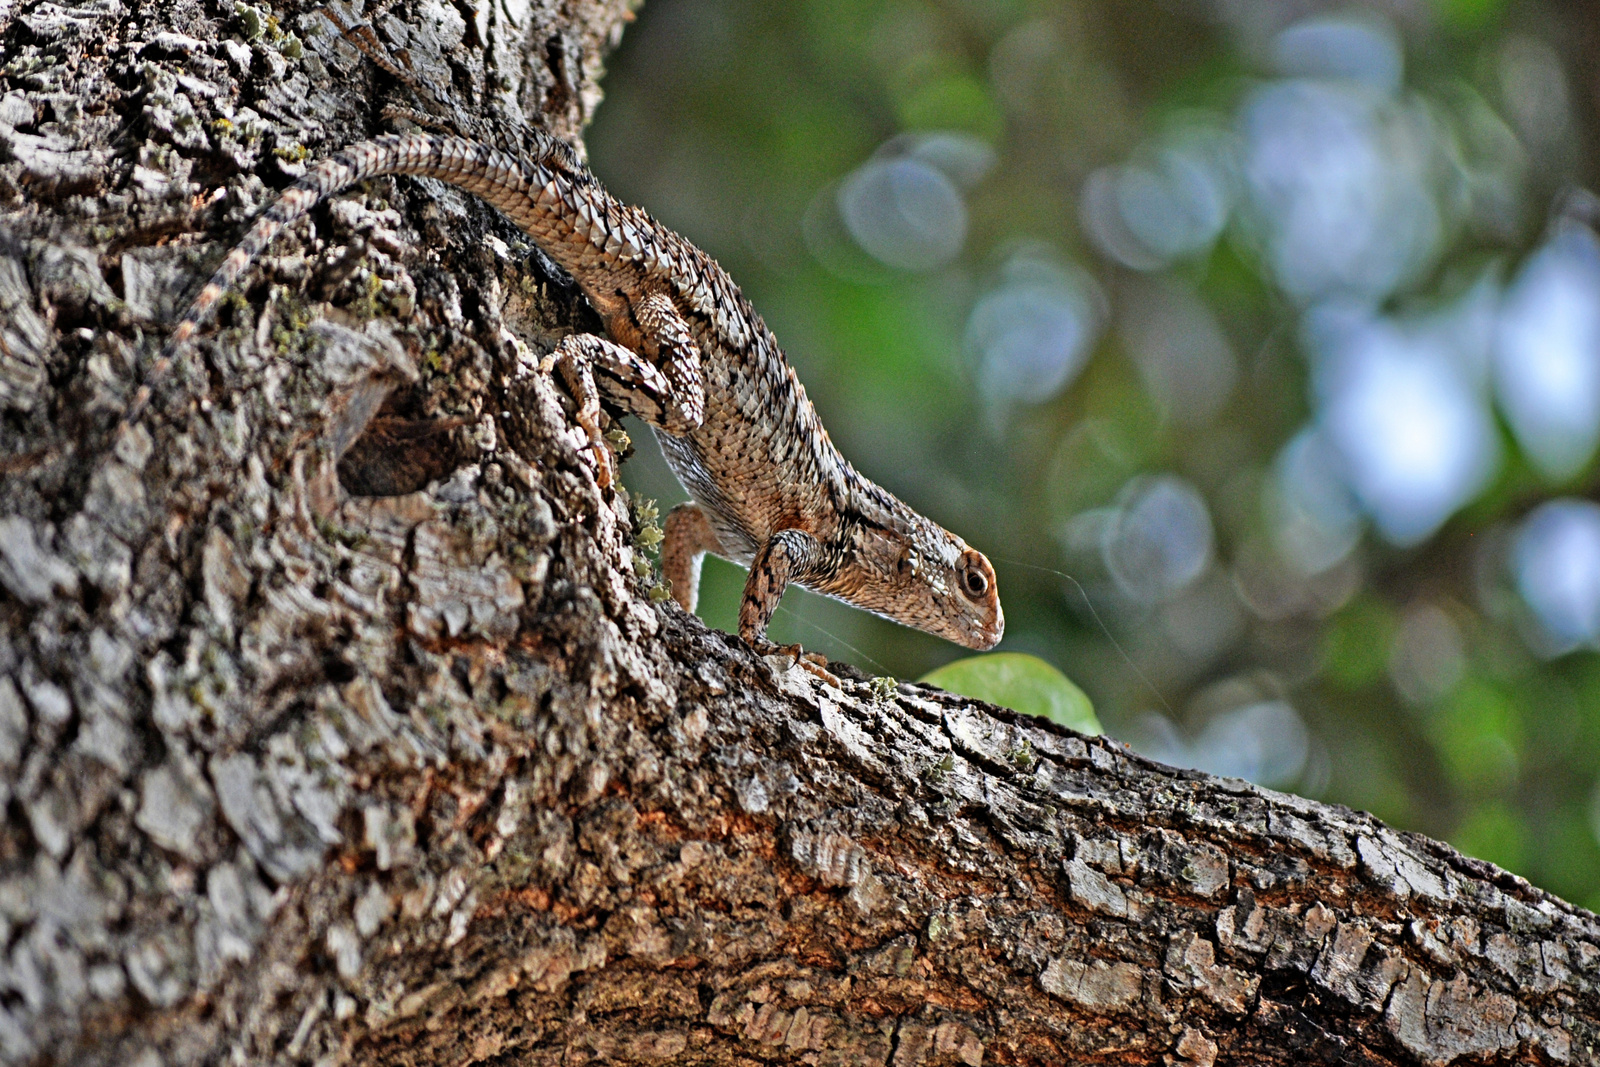 Texas tree lizard